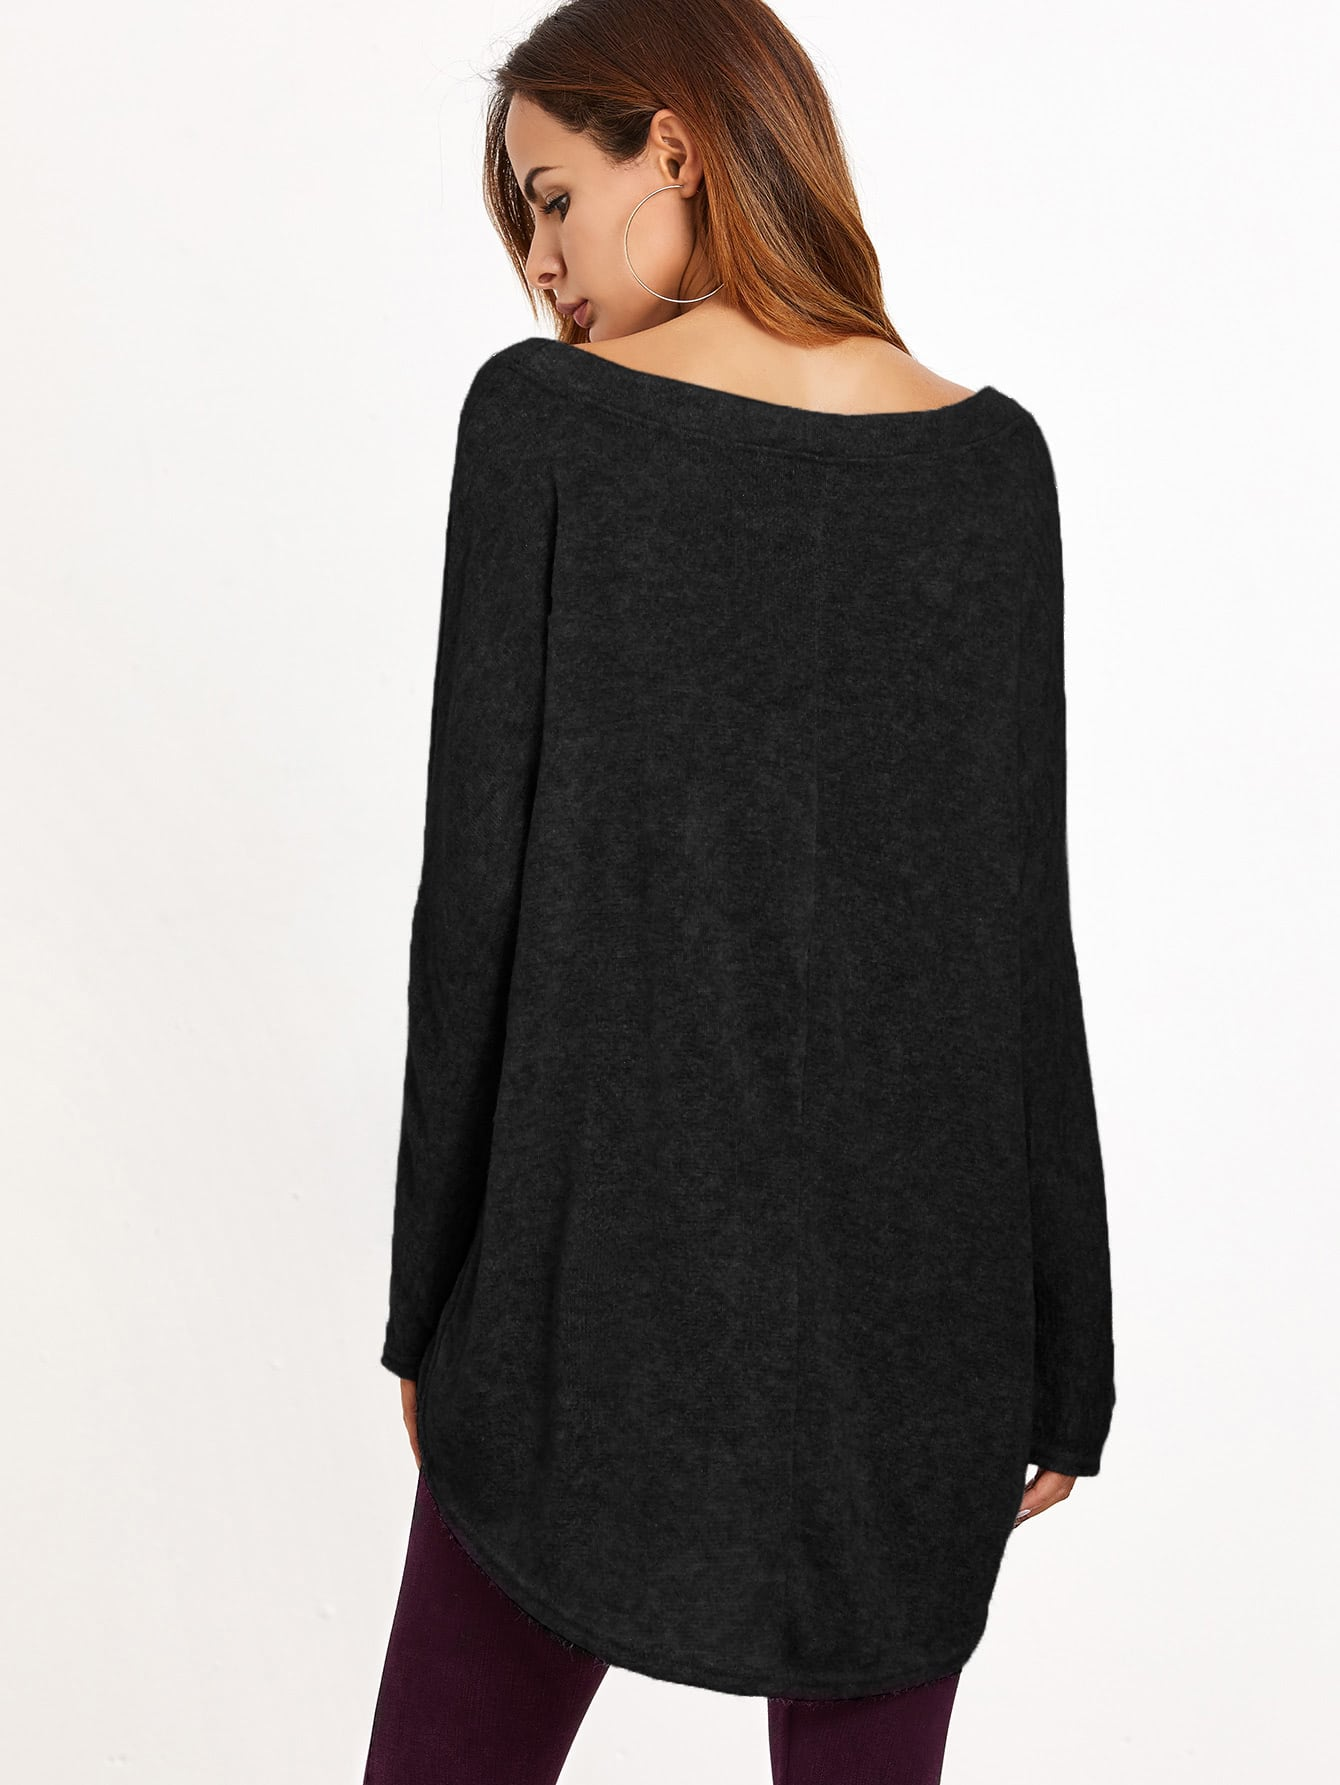 Black One Shoulder Dip Hem T-shirt